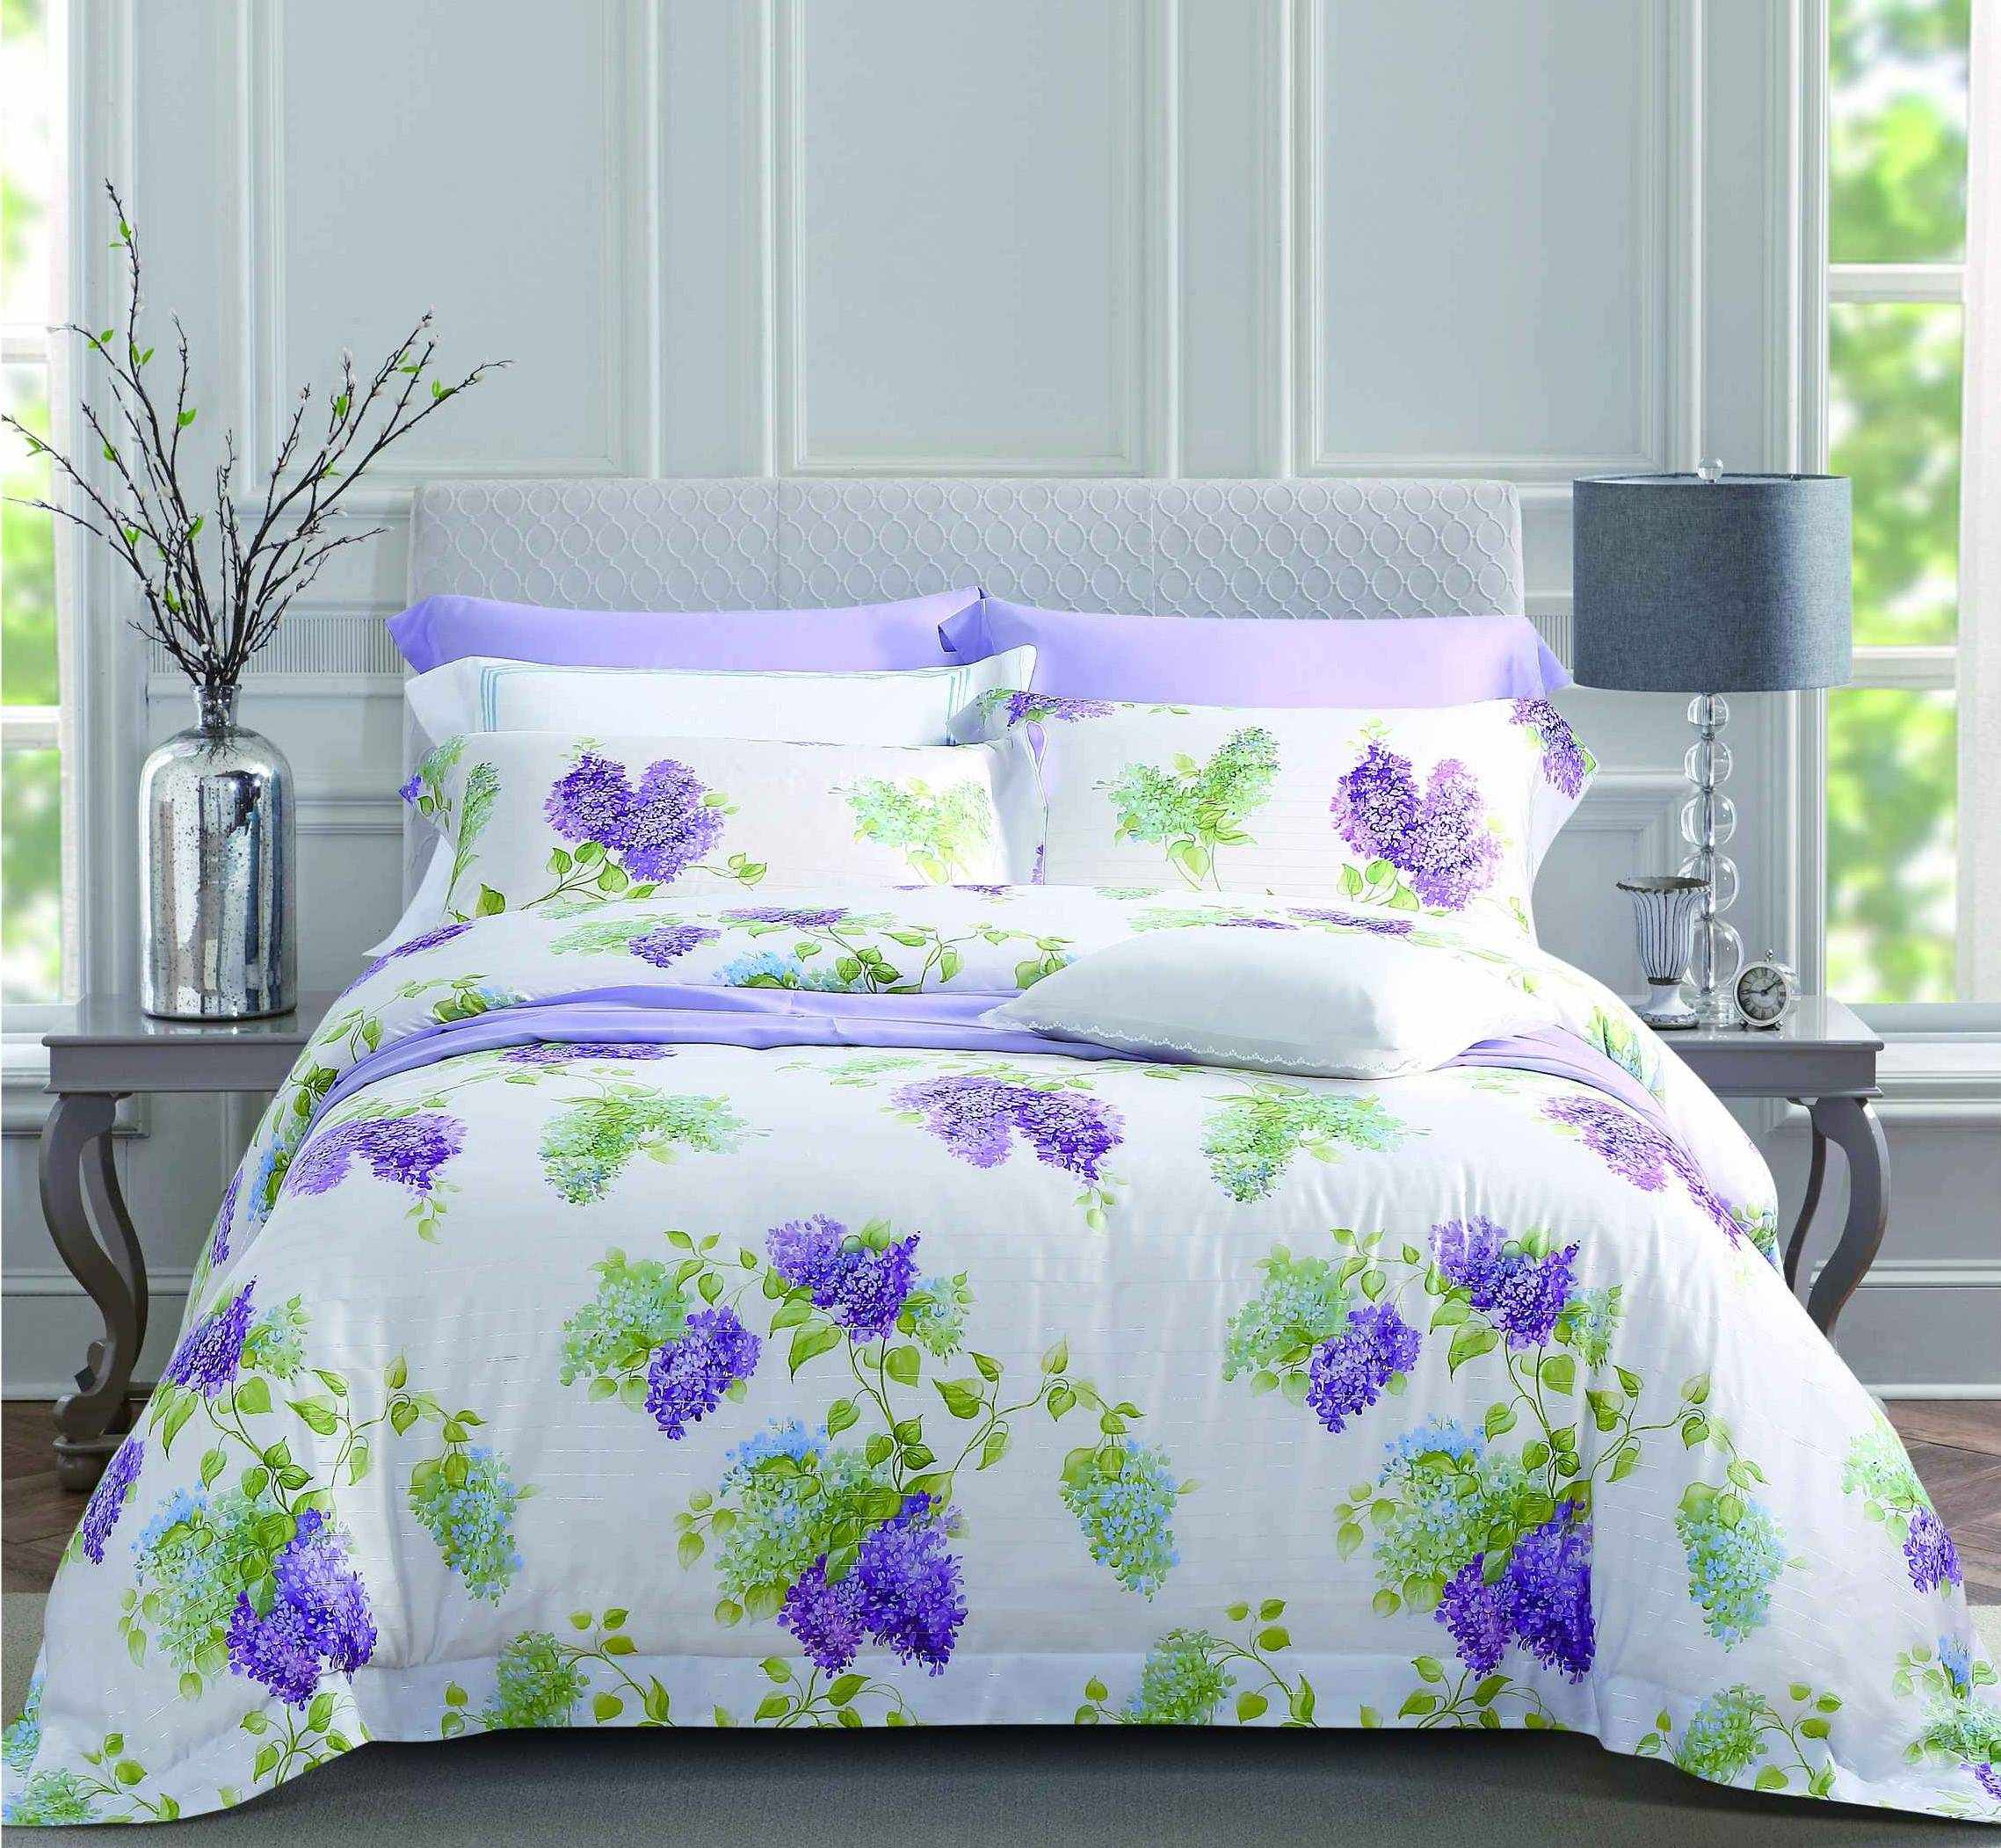 Daphne Wisteria Patterns Lyocell & Filamentary Silver Blend Bed Linen 171256 Other Material Printed image7